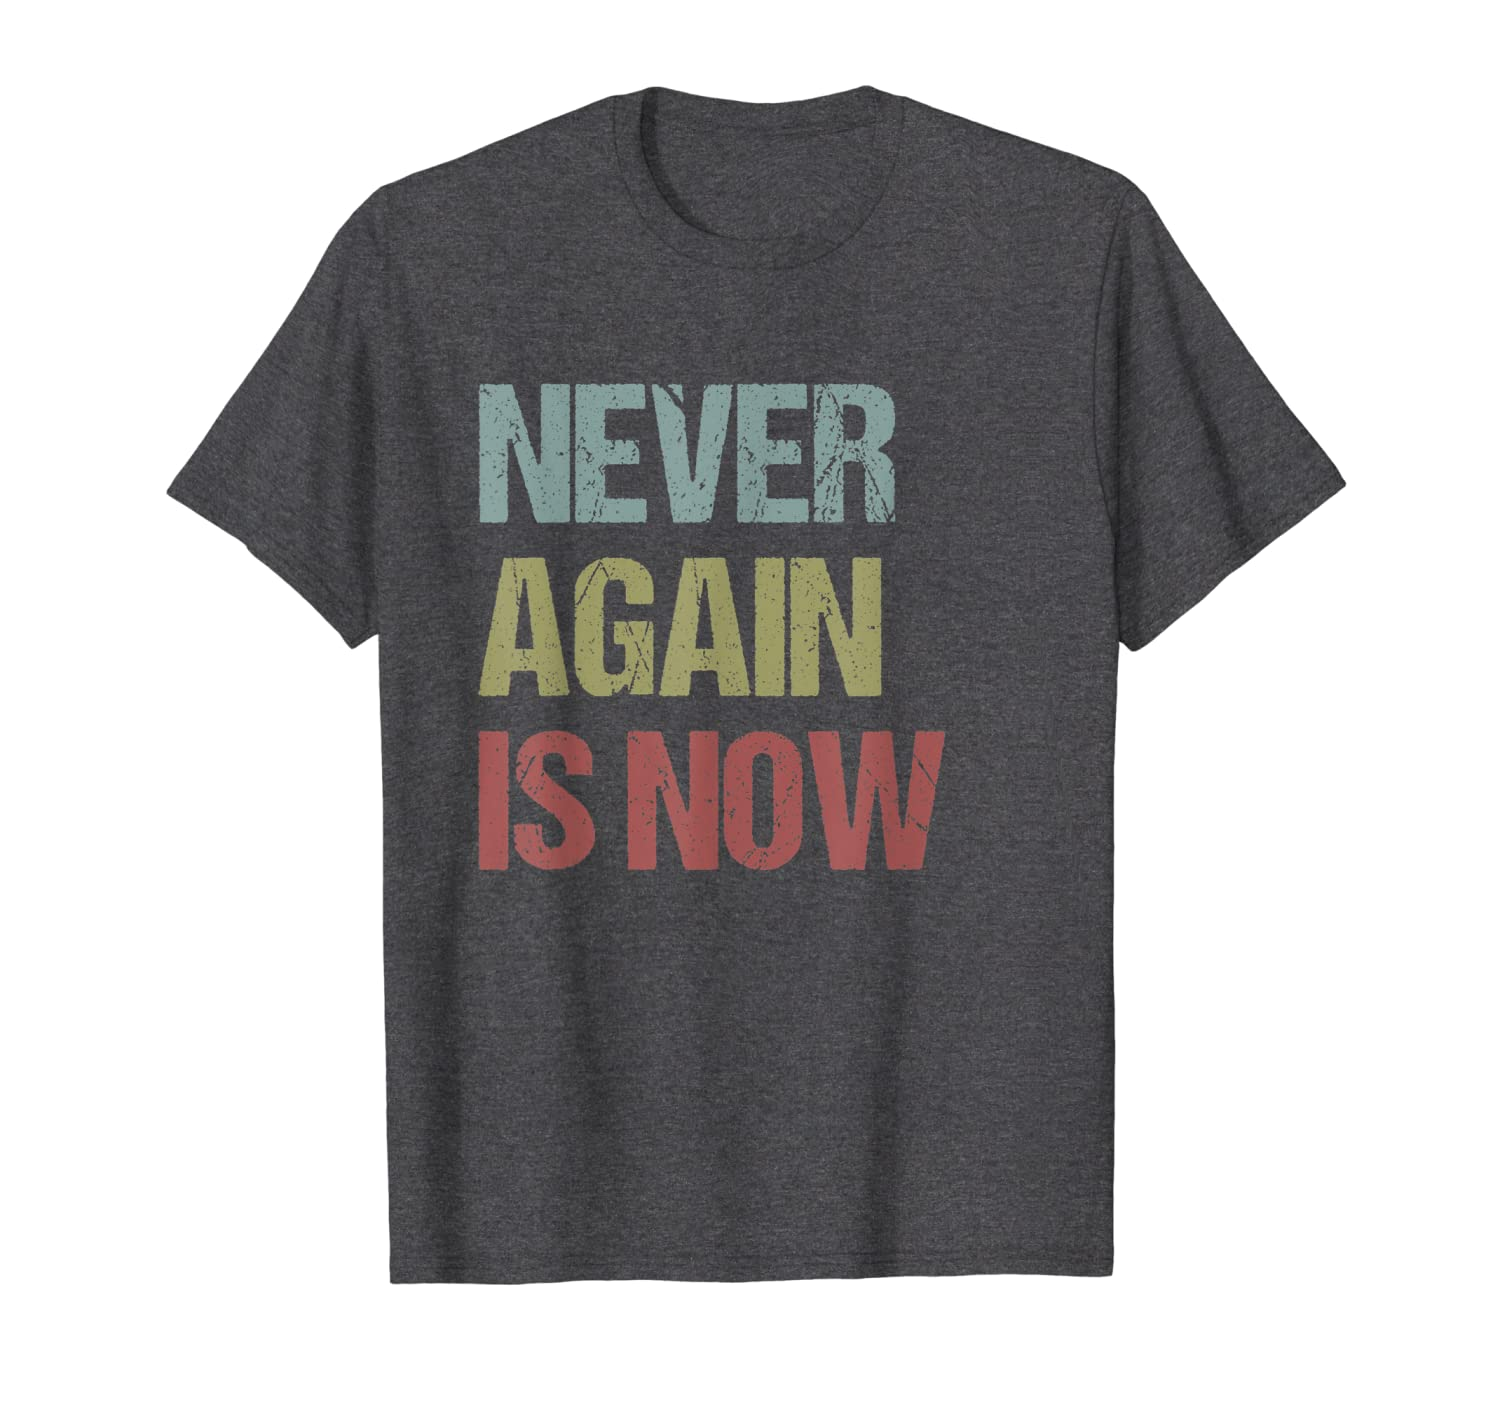 Never Again Is Now – Close the Camps Protest Tee